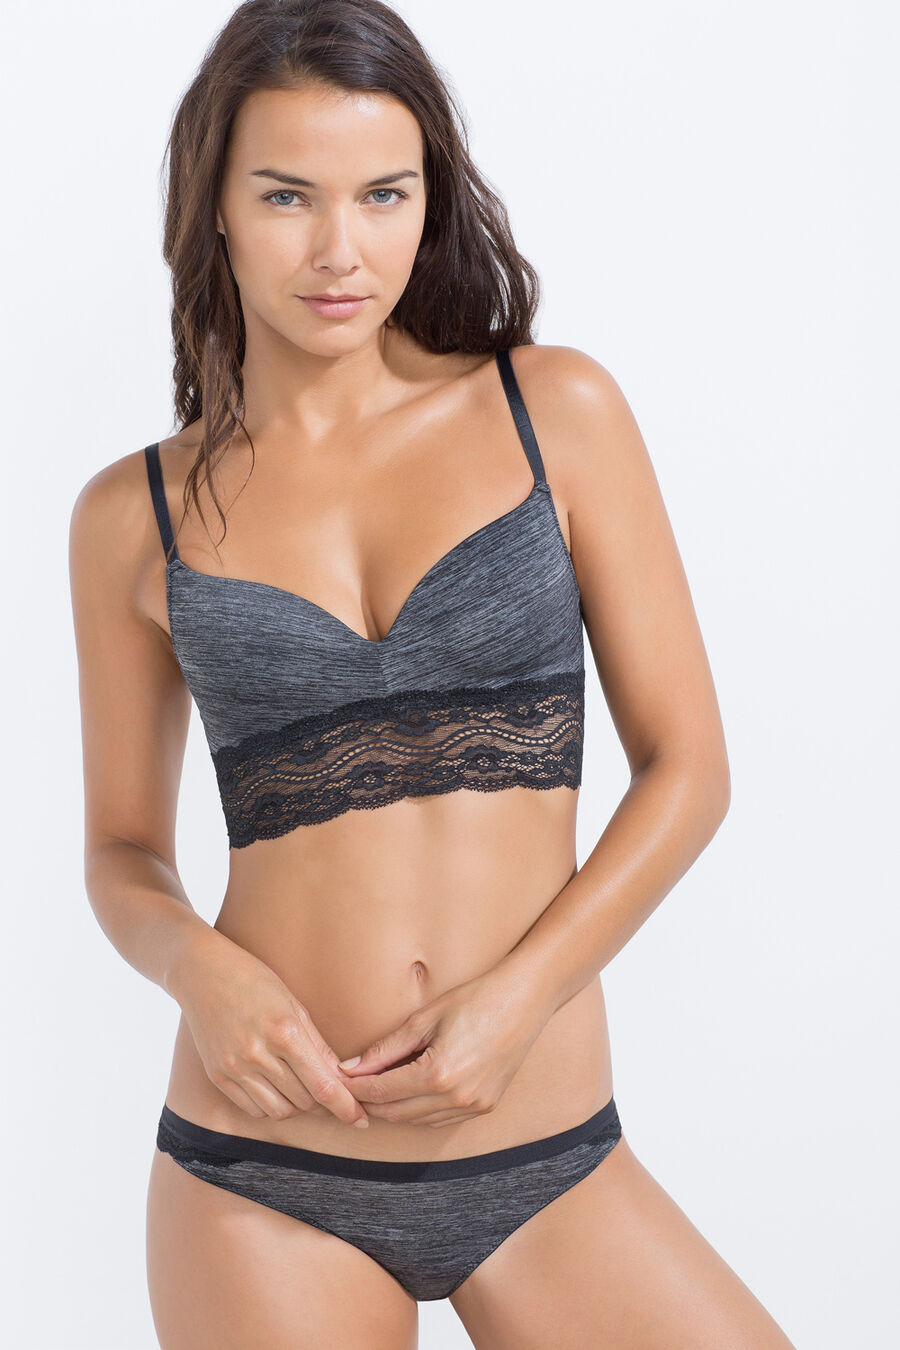 Micro structure and lace padded bra